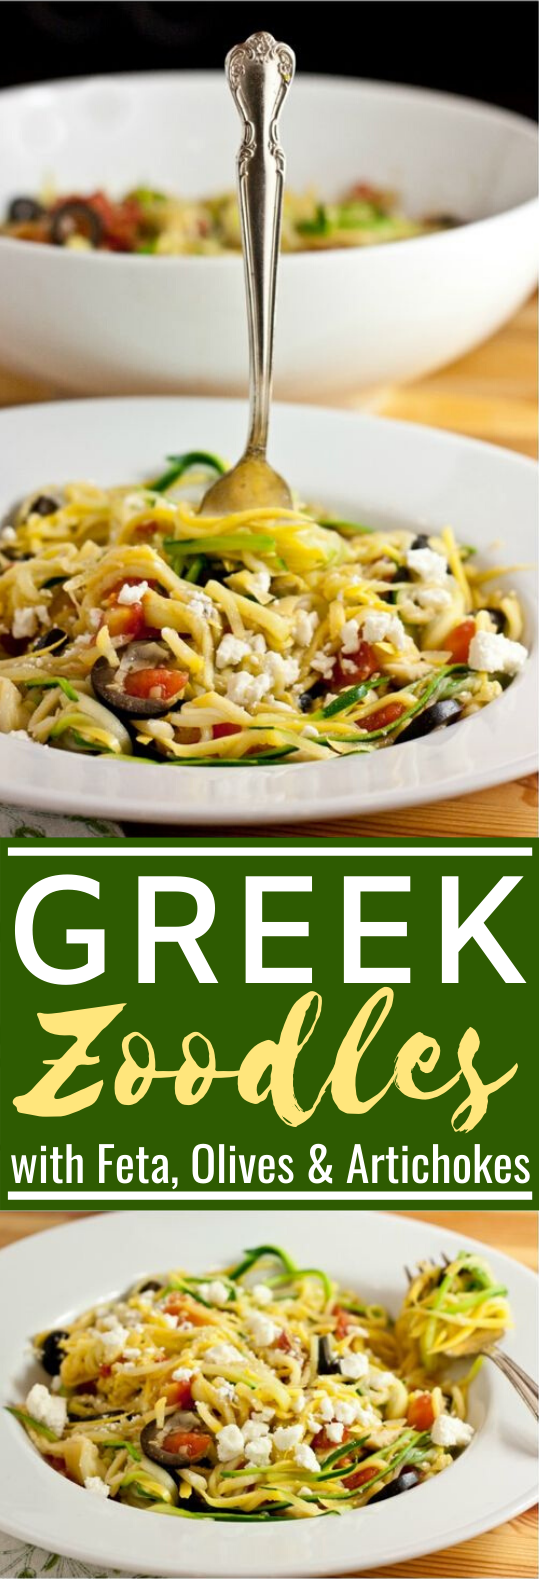 Greek Zucchini Noodles (Zoodles) with Feta, Olives, Artichokes and Tomatoes #healthy #glutenfree #lowcarb #keto #lunch